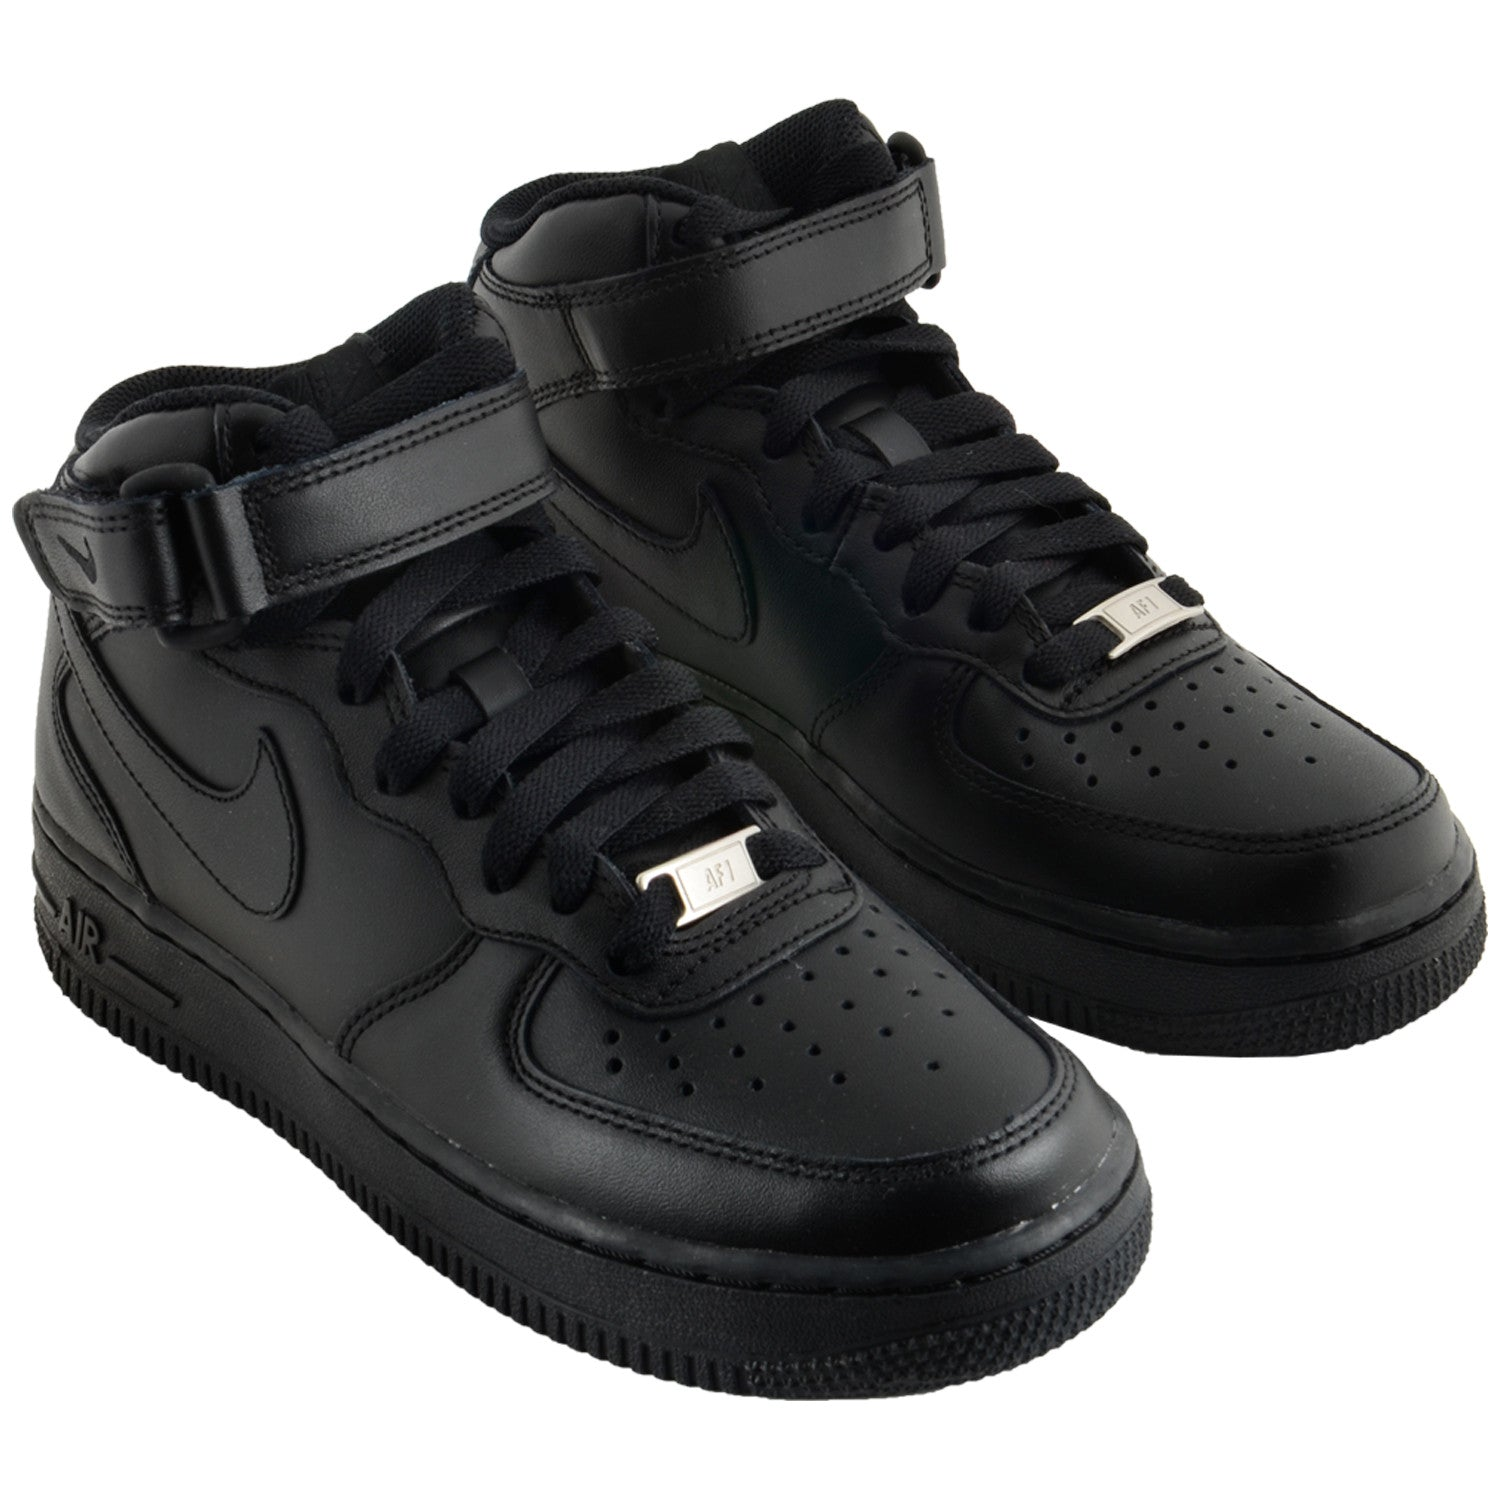 Wmn's  Black Air Force 1 Mid 07 LE 366731-001